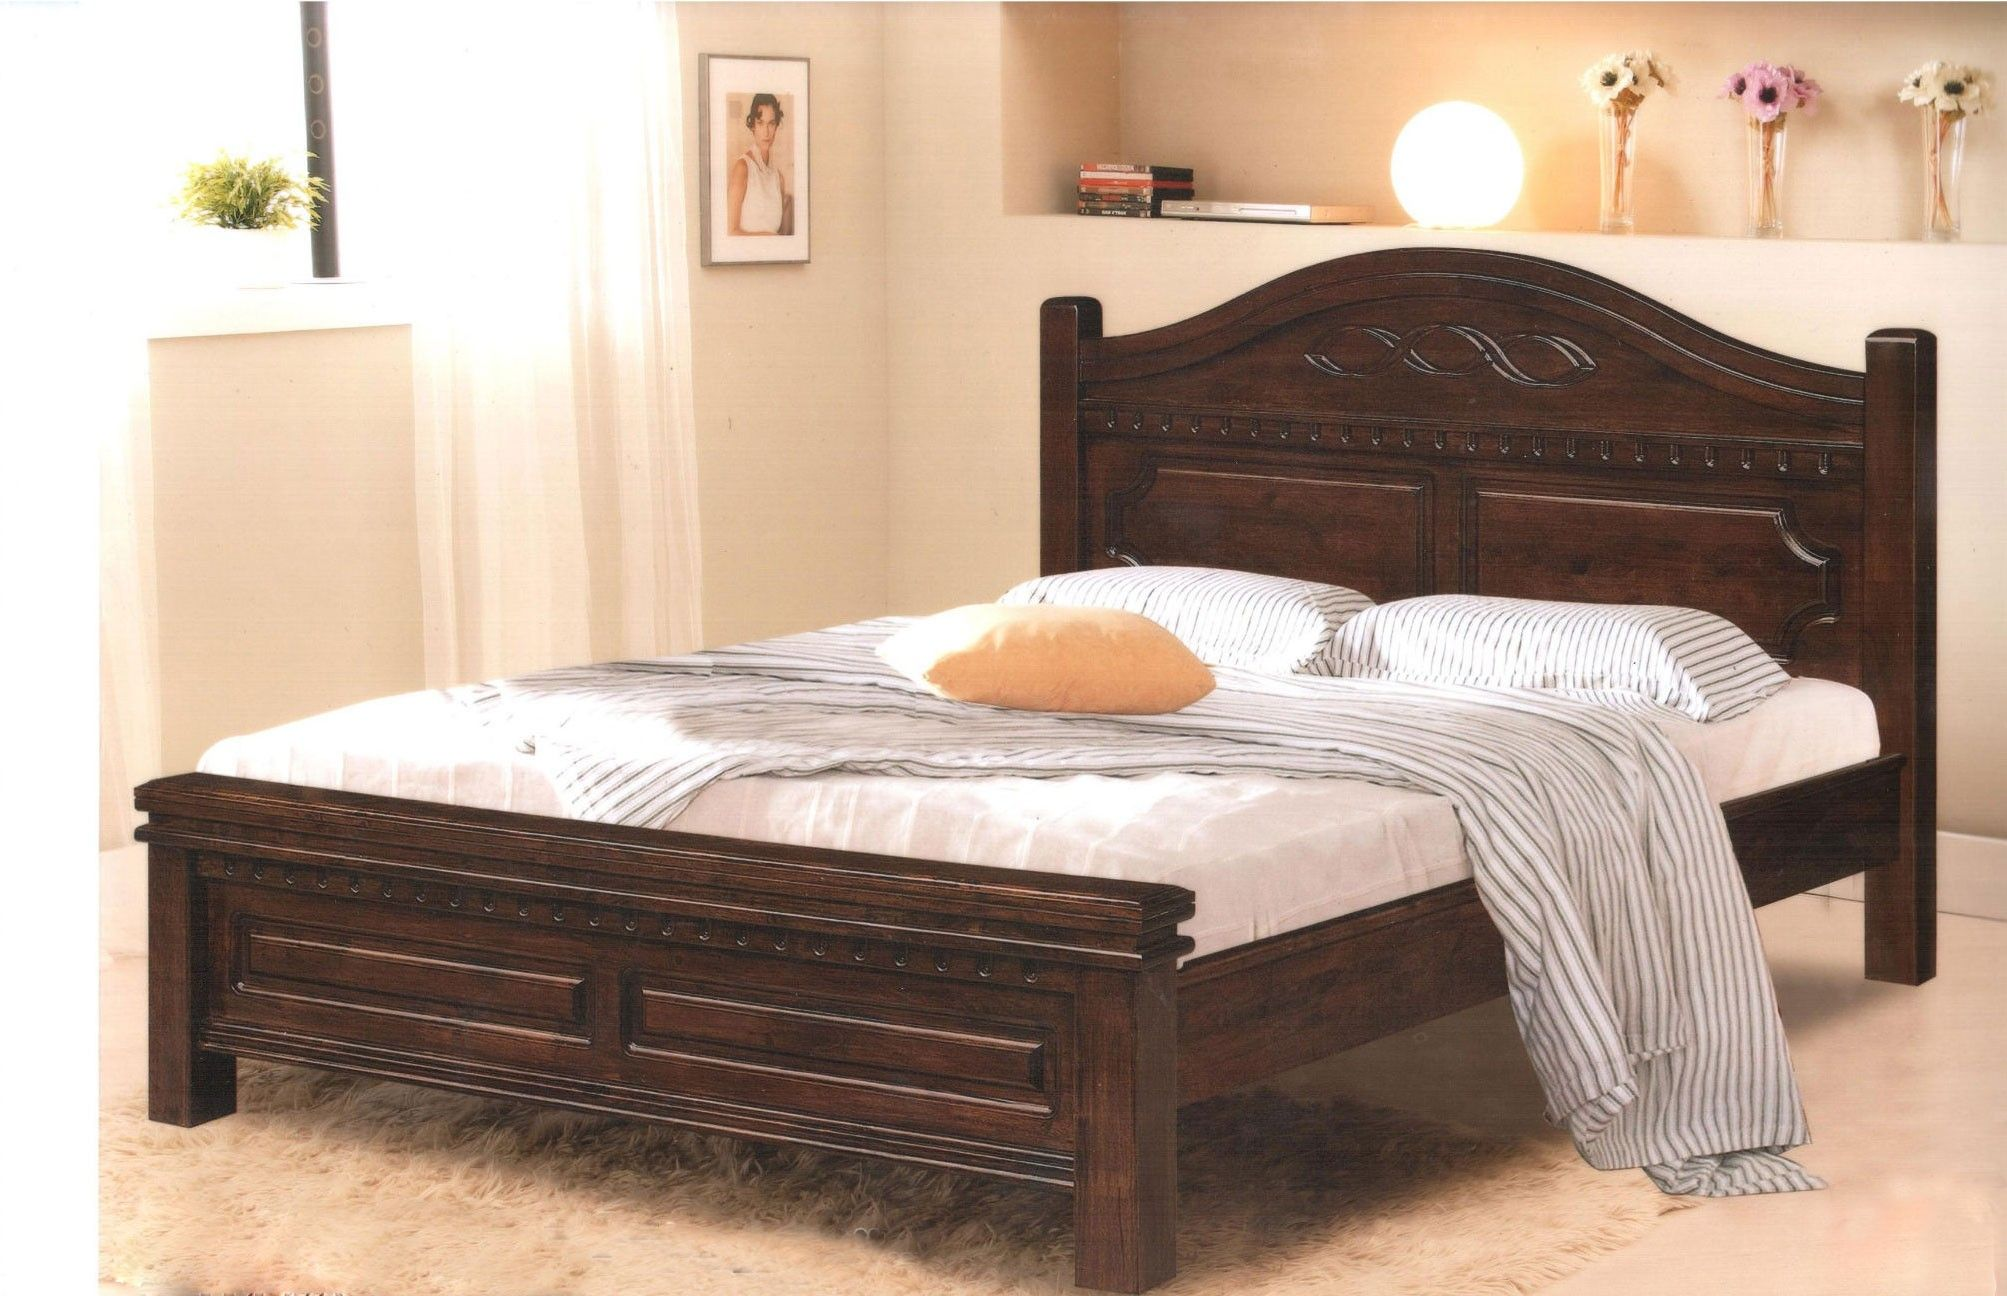 Elegant Full Size Wooden Bed Frame With Headboard Wooden Bed